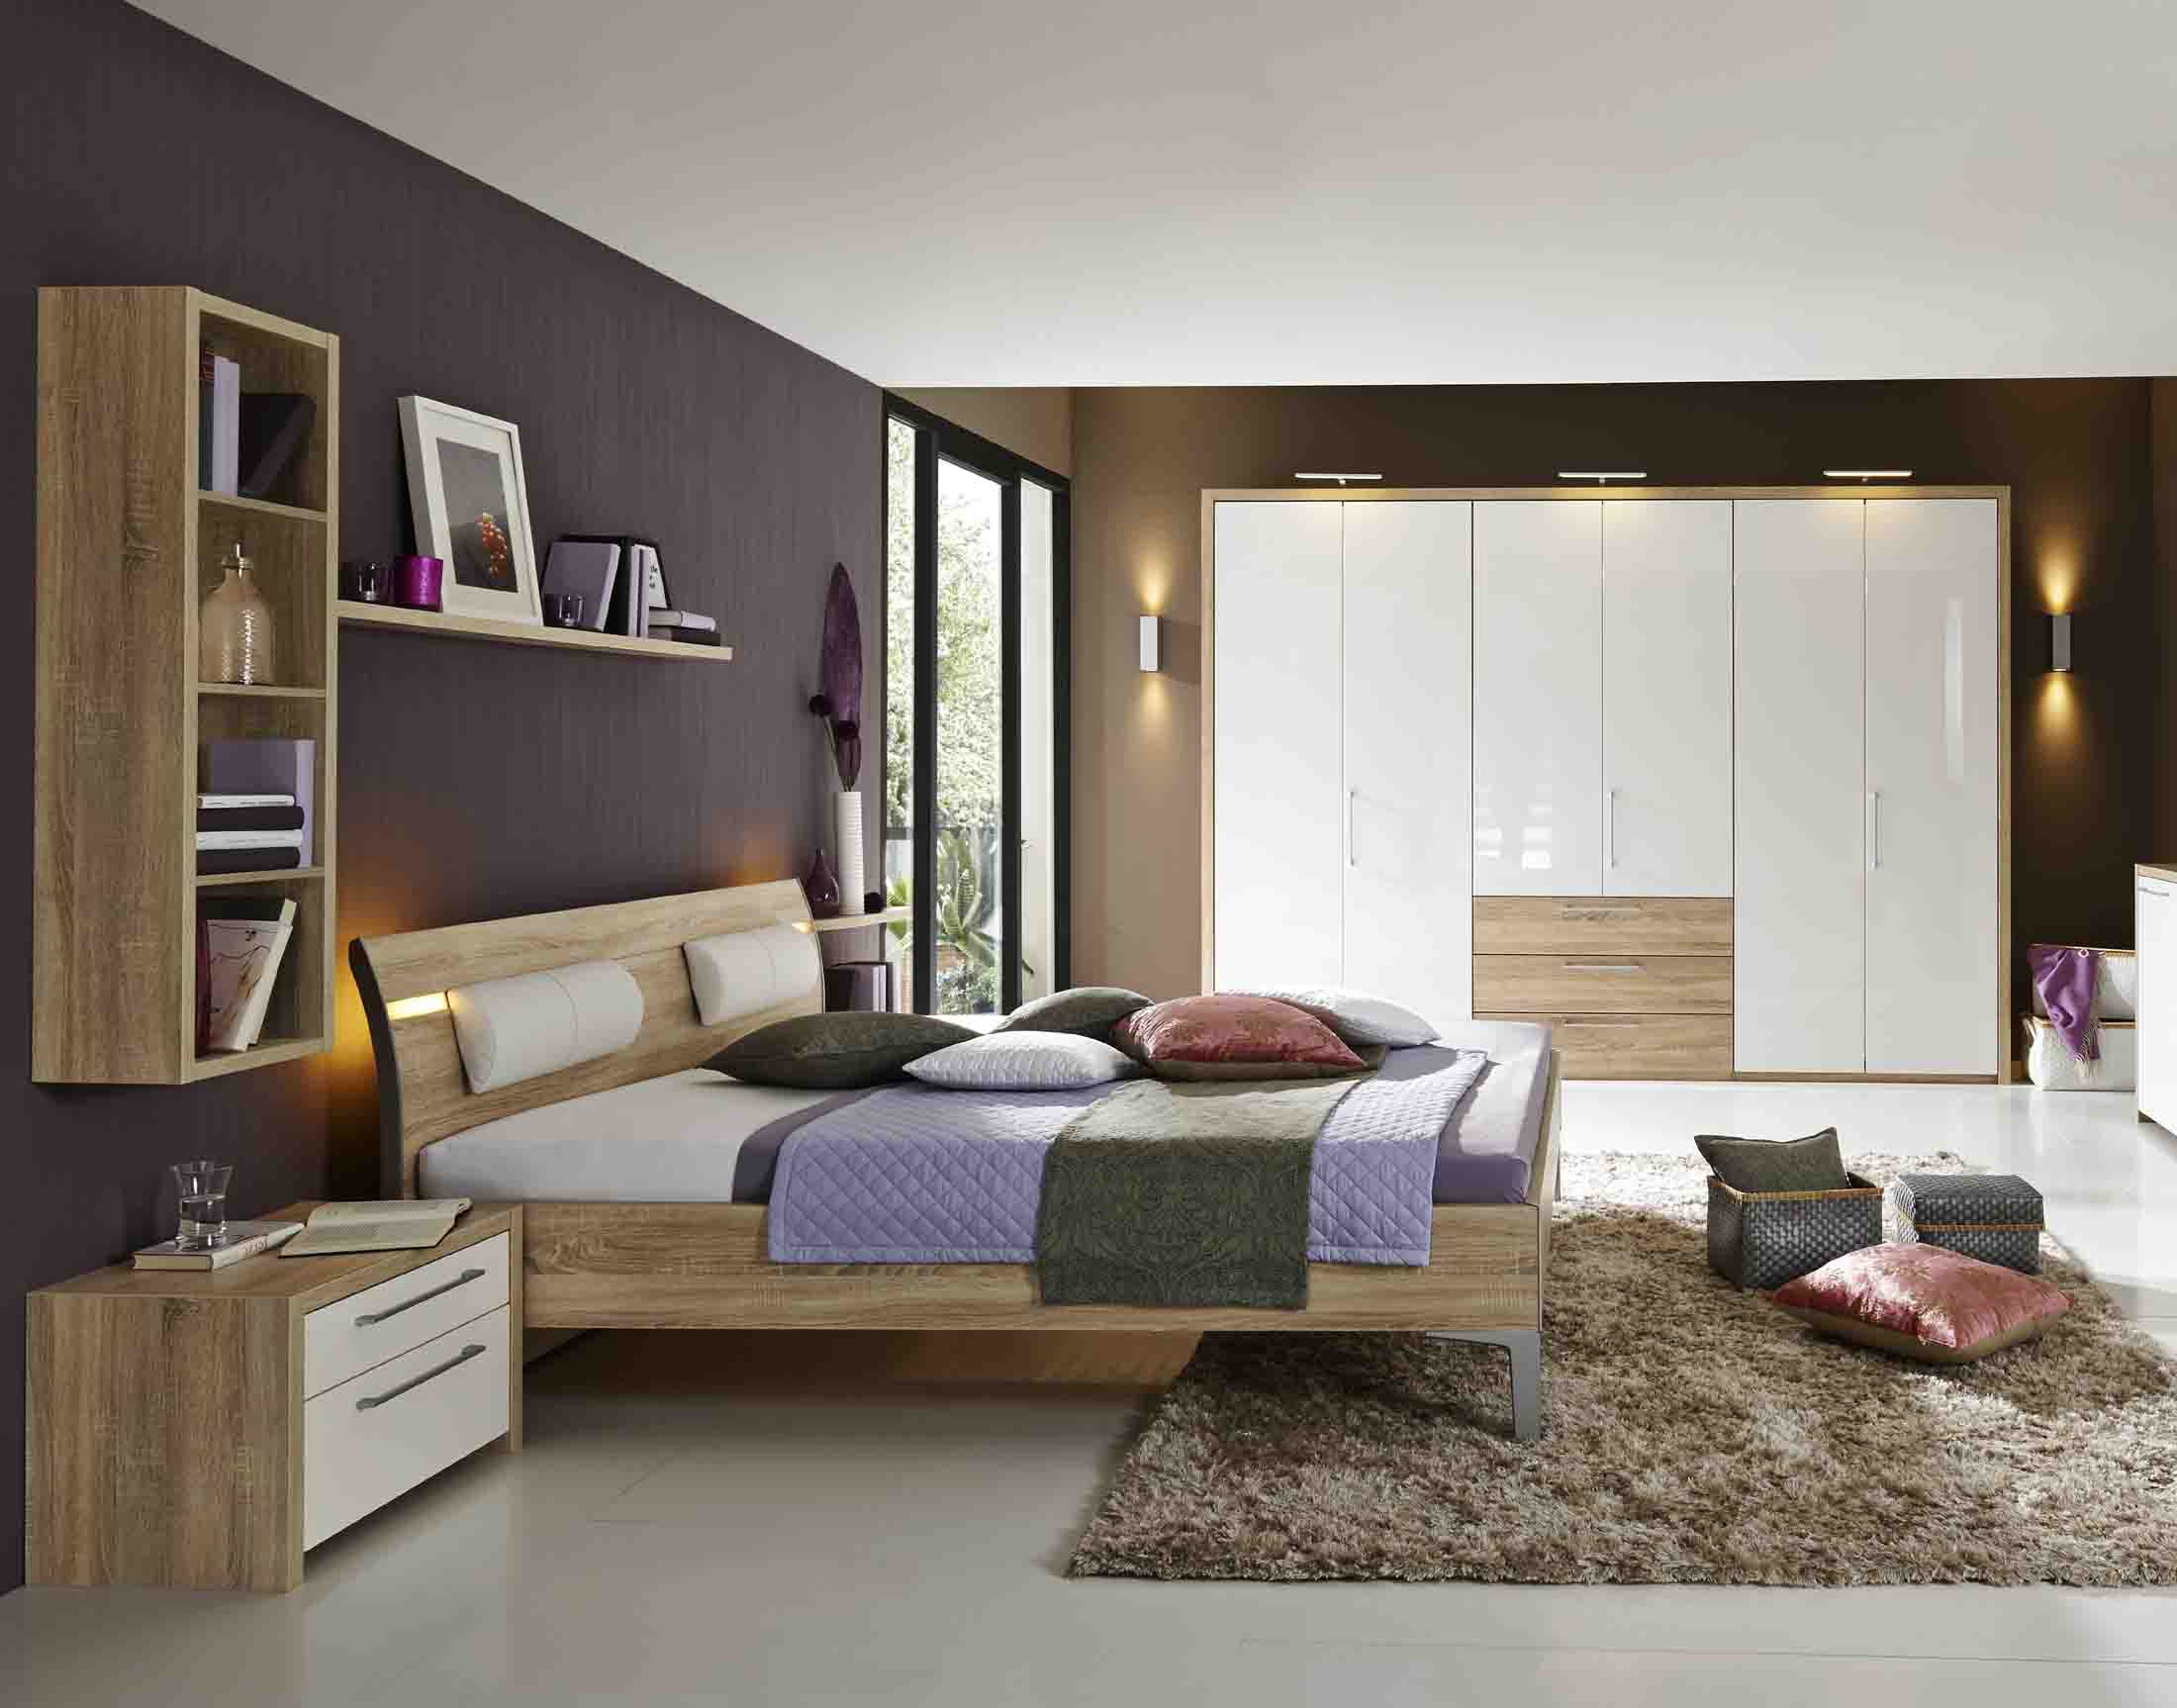 solo nova schlafzimmer eiche macao biancowei massiva m. Black Bedroom Furniture Sets. Home Design Ideas